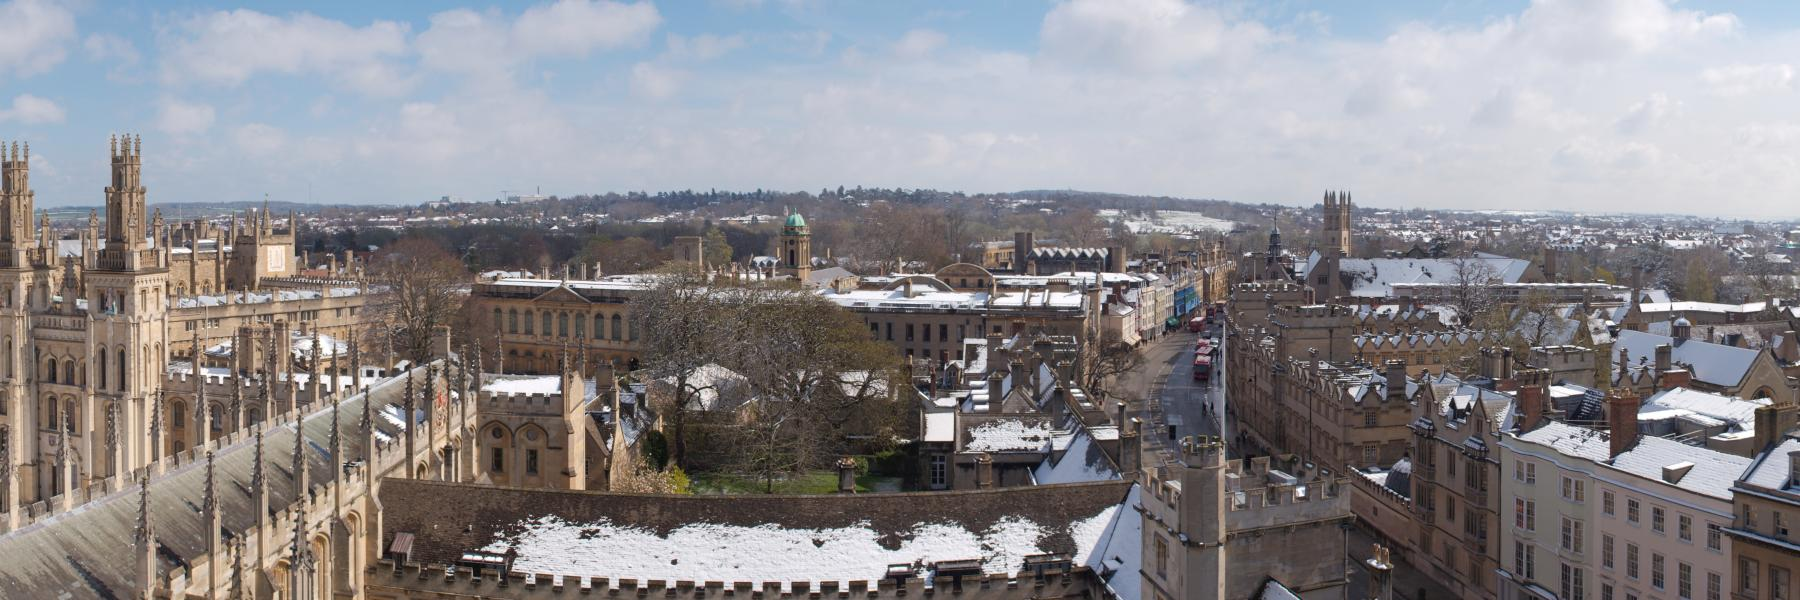 oxford city skyline